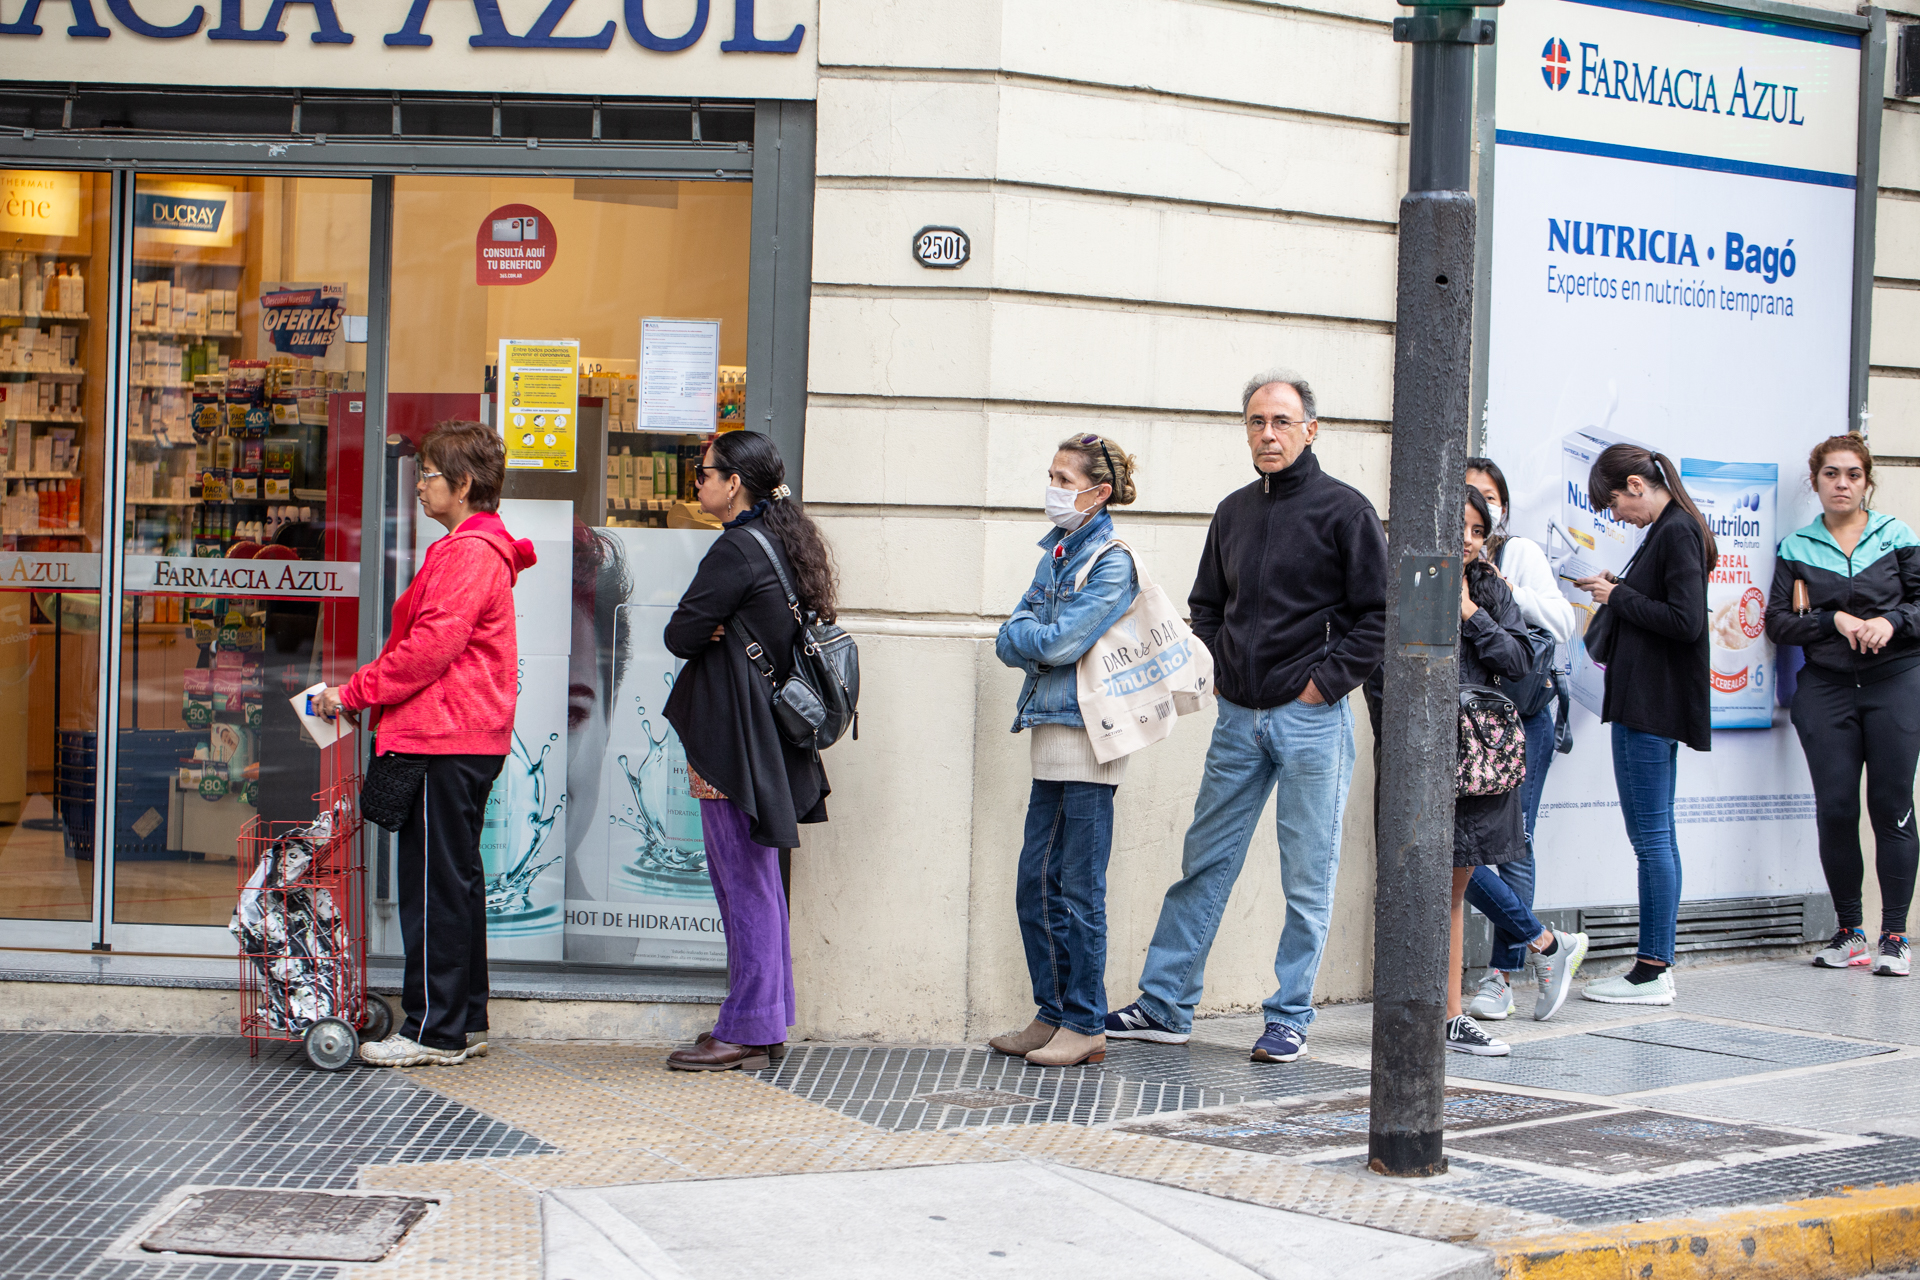 People wait in line outside a pharmacy in Argentina.